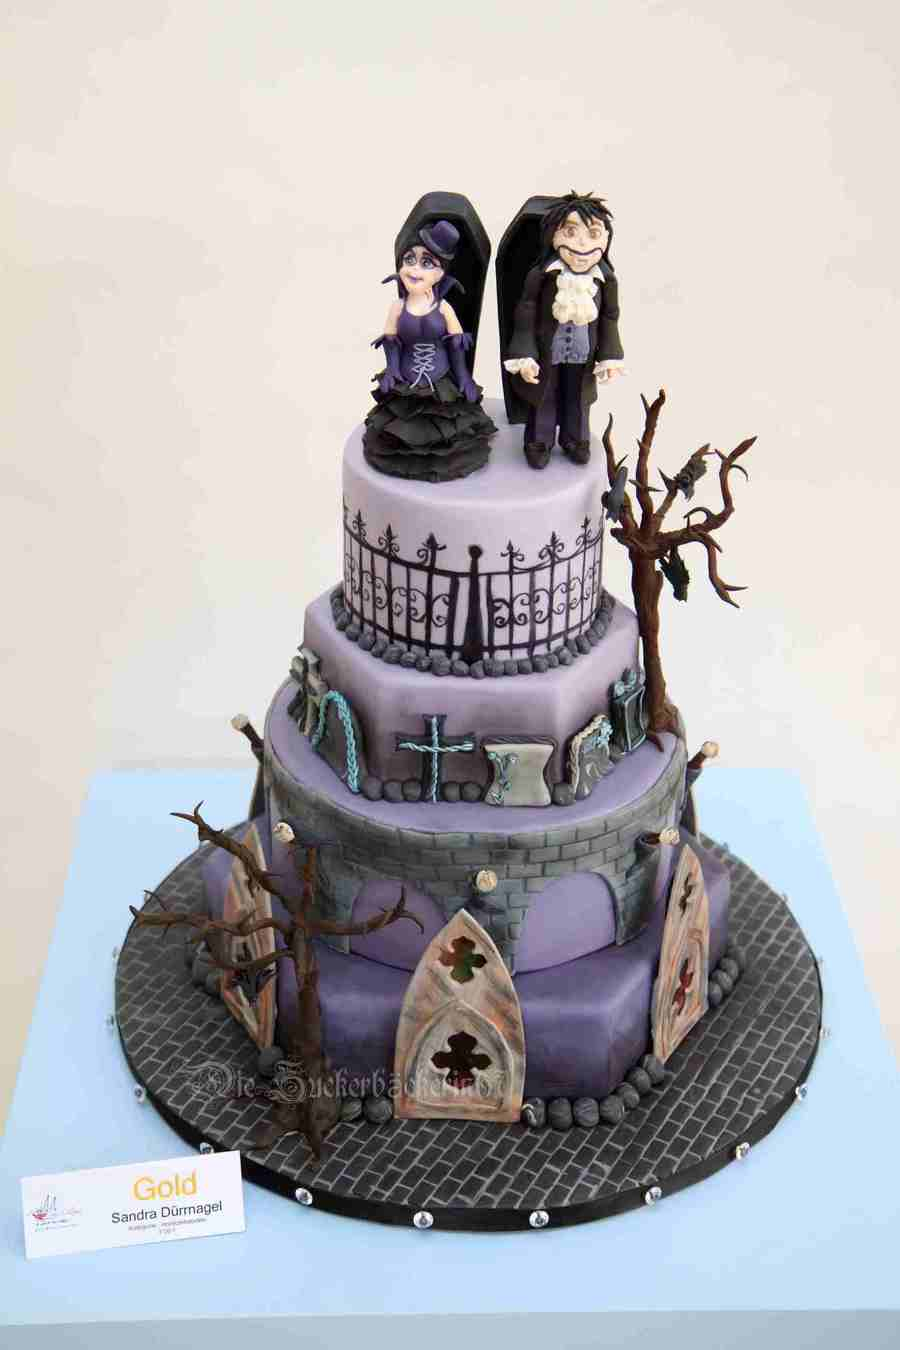 My Vampire Gothic Wedding Cake I Won On The Cake Cologne A ...